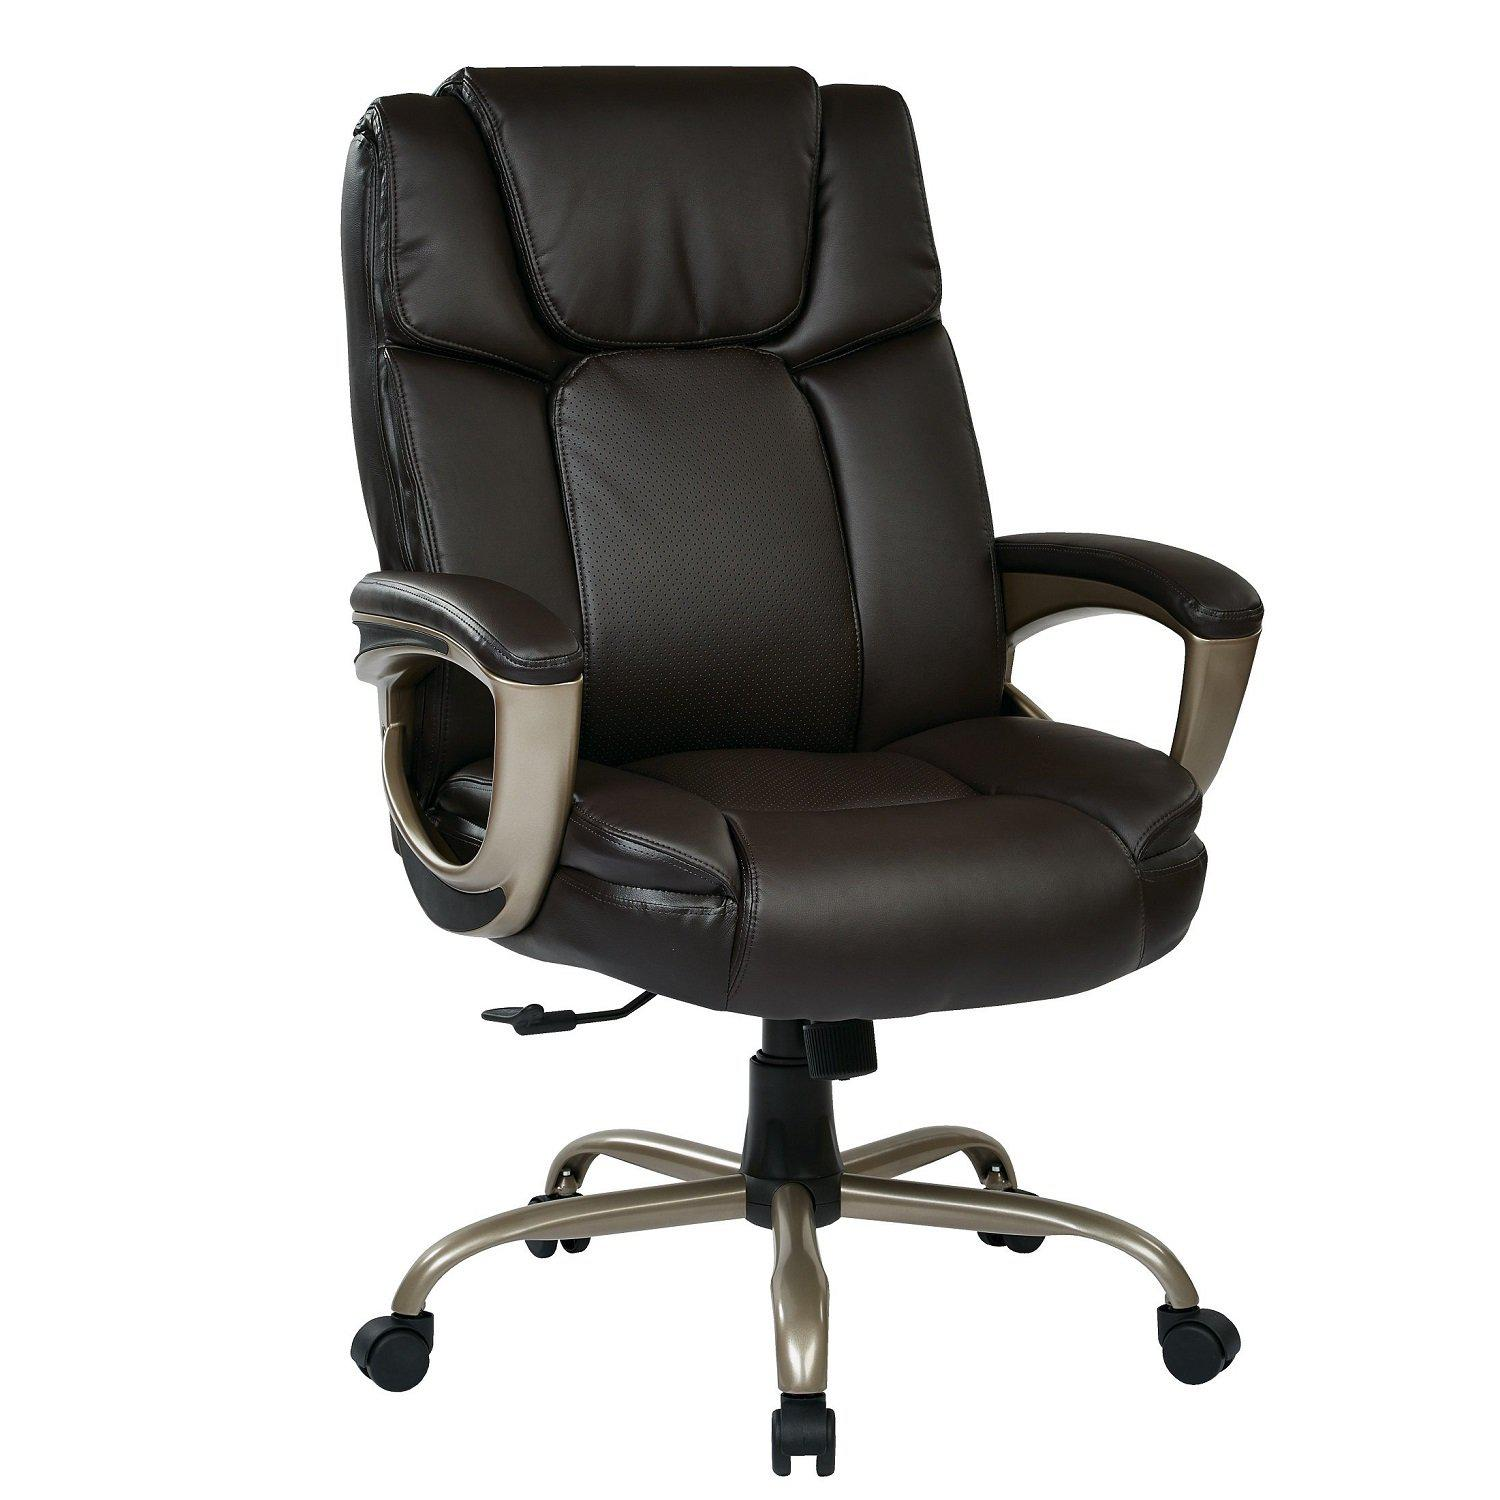 Executive Bonded Leather Big Man's Chair with Coated Padded Loop Arms and Cocoa Metal Base